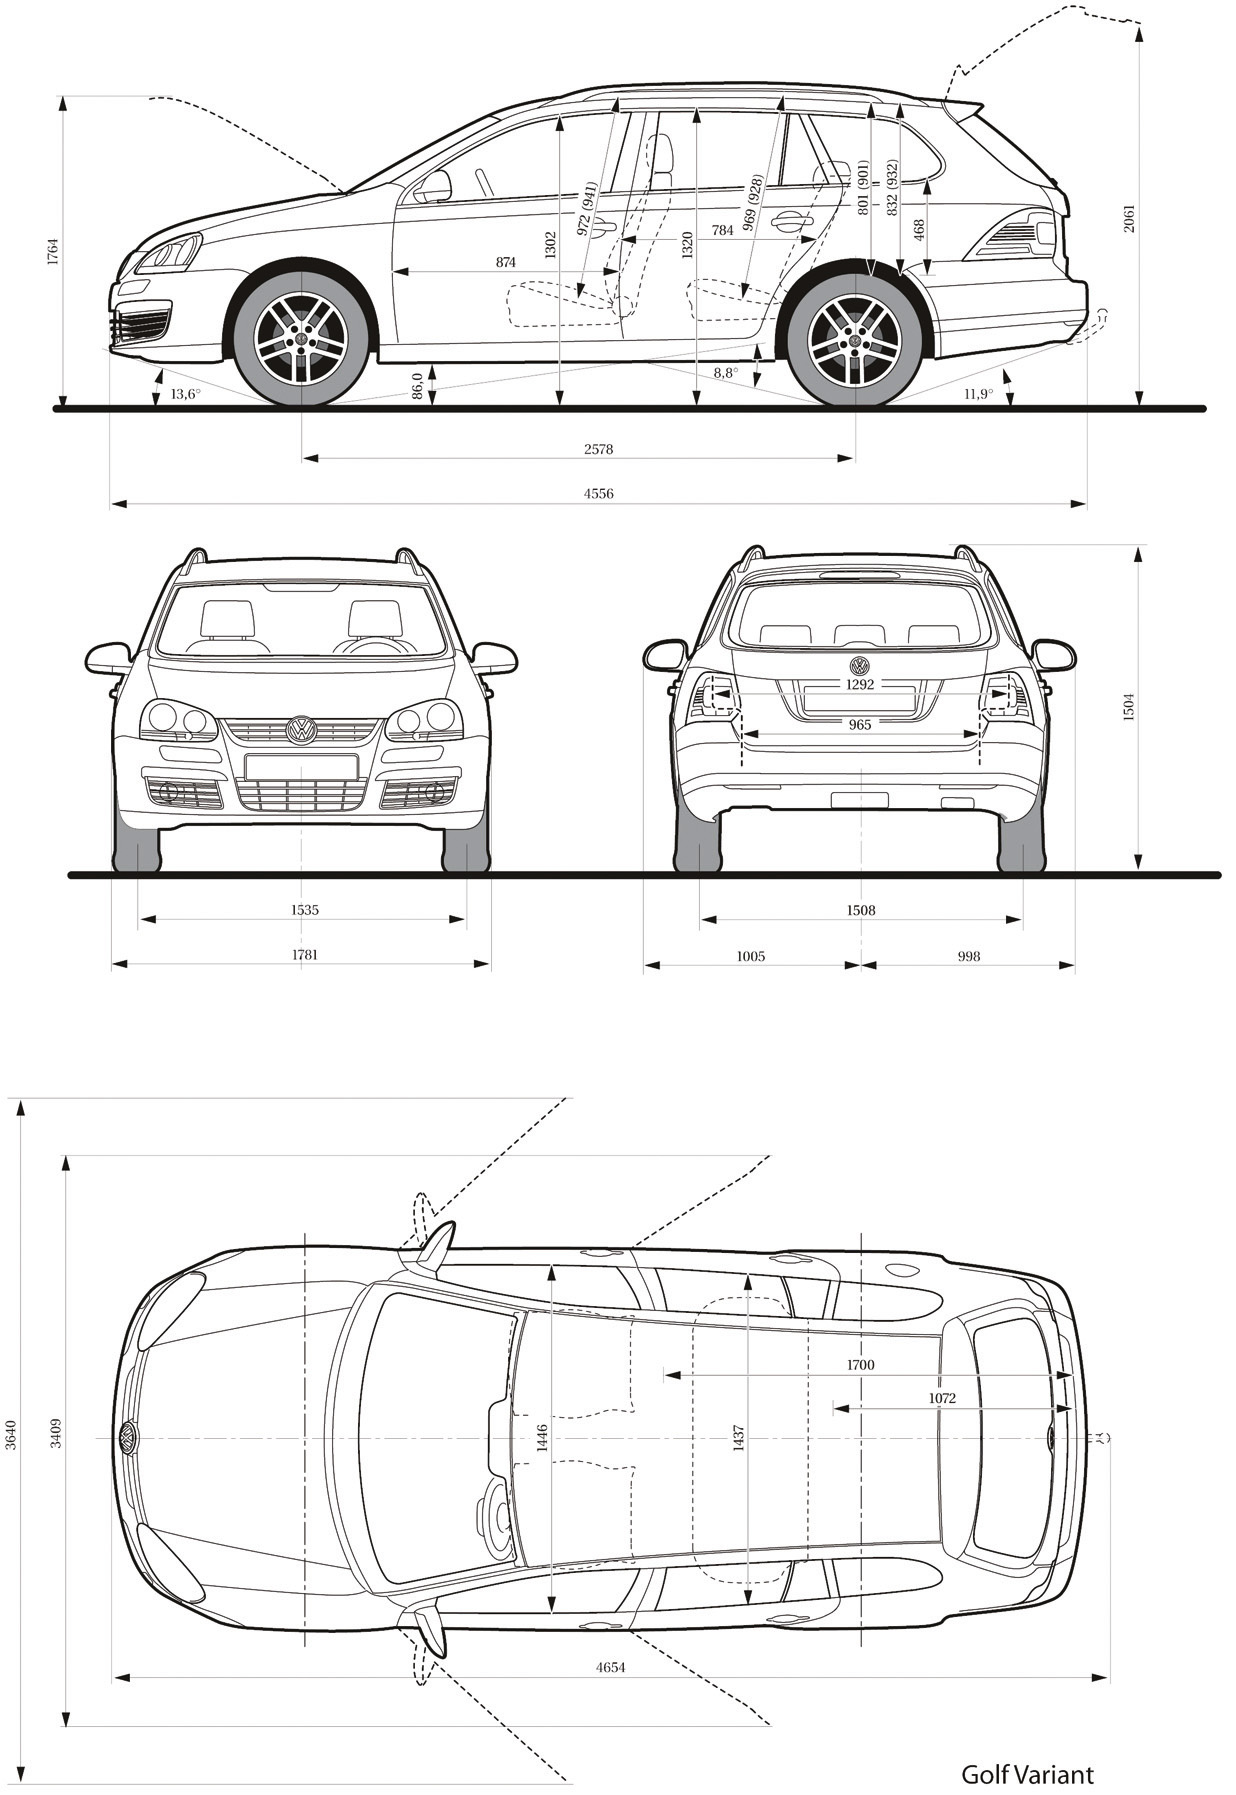 Volkswagen golf v blueprint download free blueprint for 3d modeling volkswagen golf v blueprint malvernweather Image collections